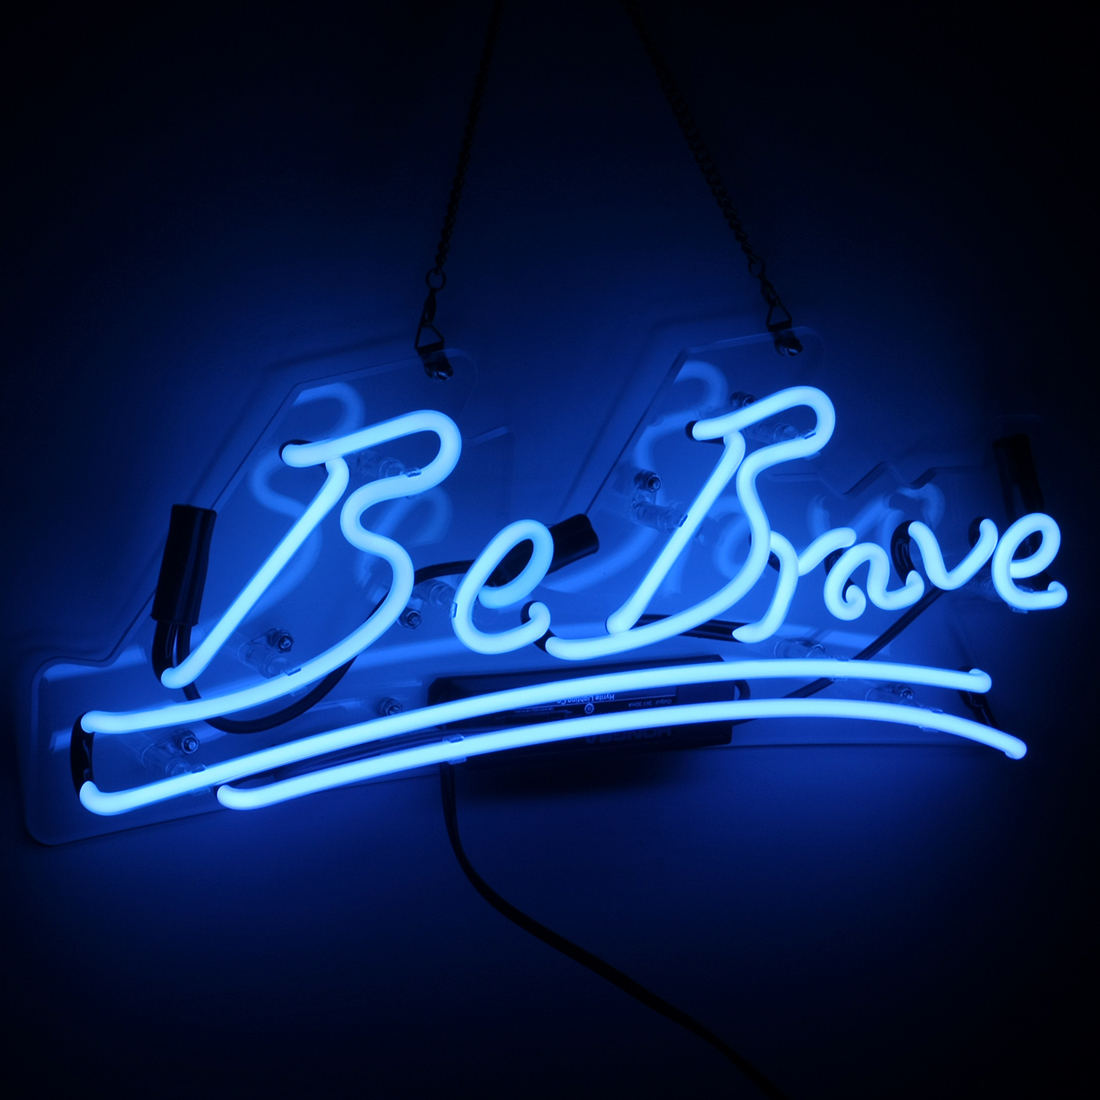 220v 110v Flexible Tube Flex Custom Sign for be brave Neon Light blue Lamp